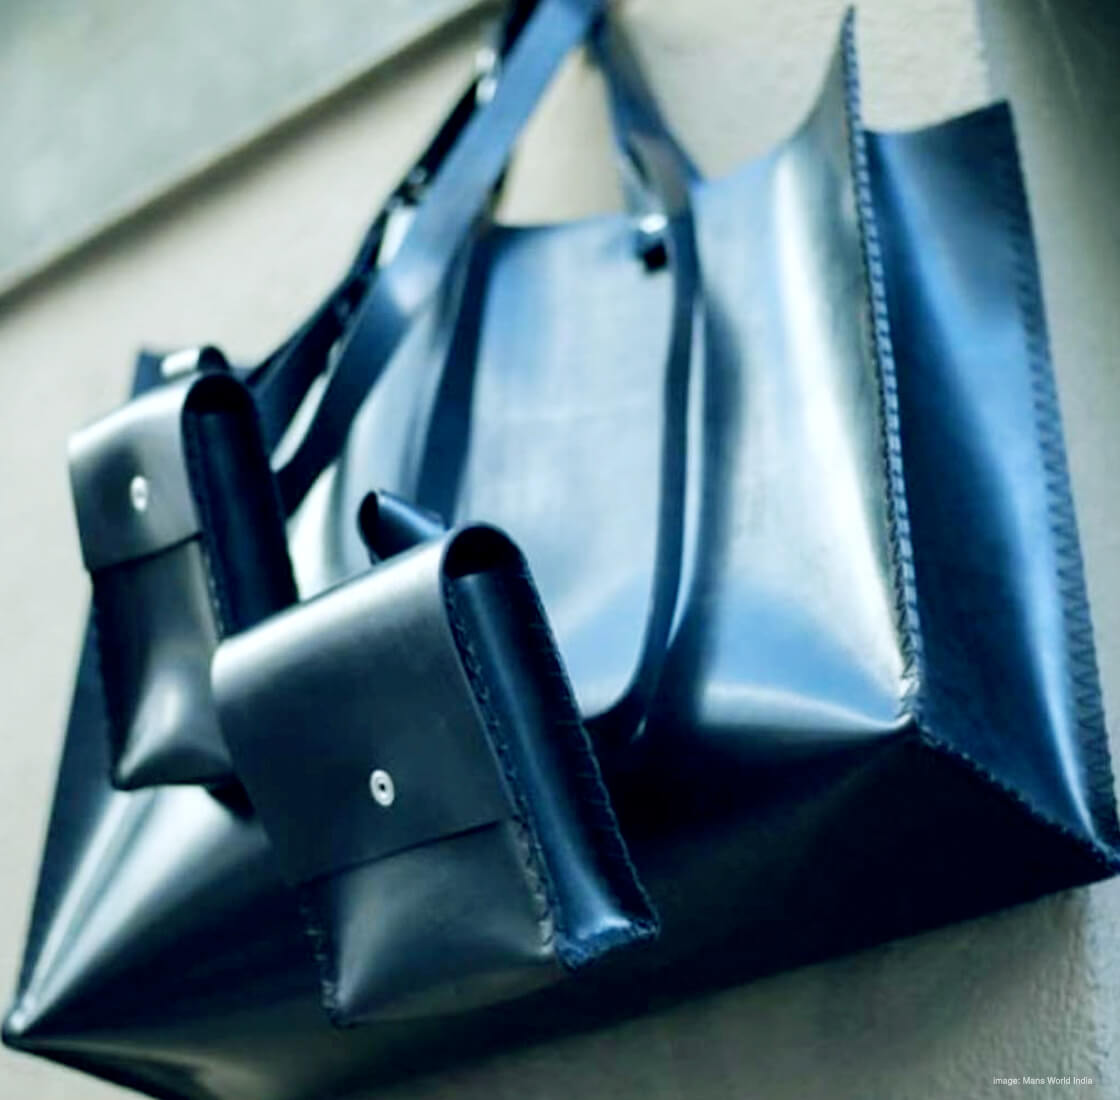 bags from chamar studio's bombay black collection